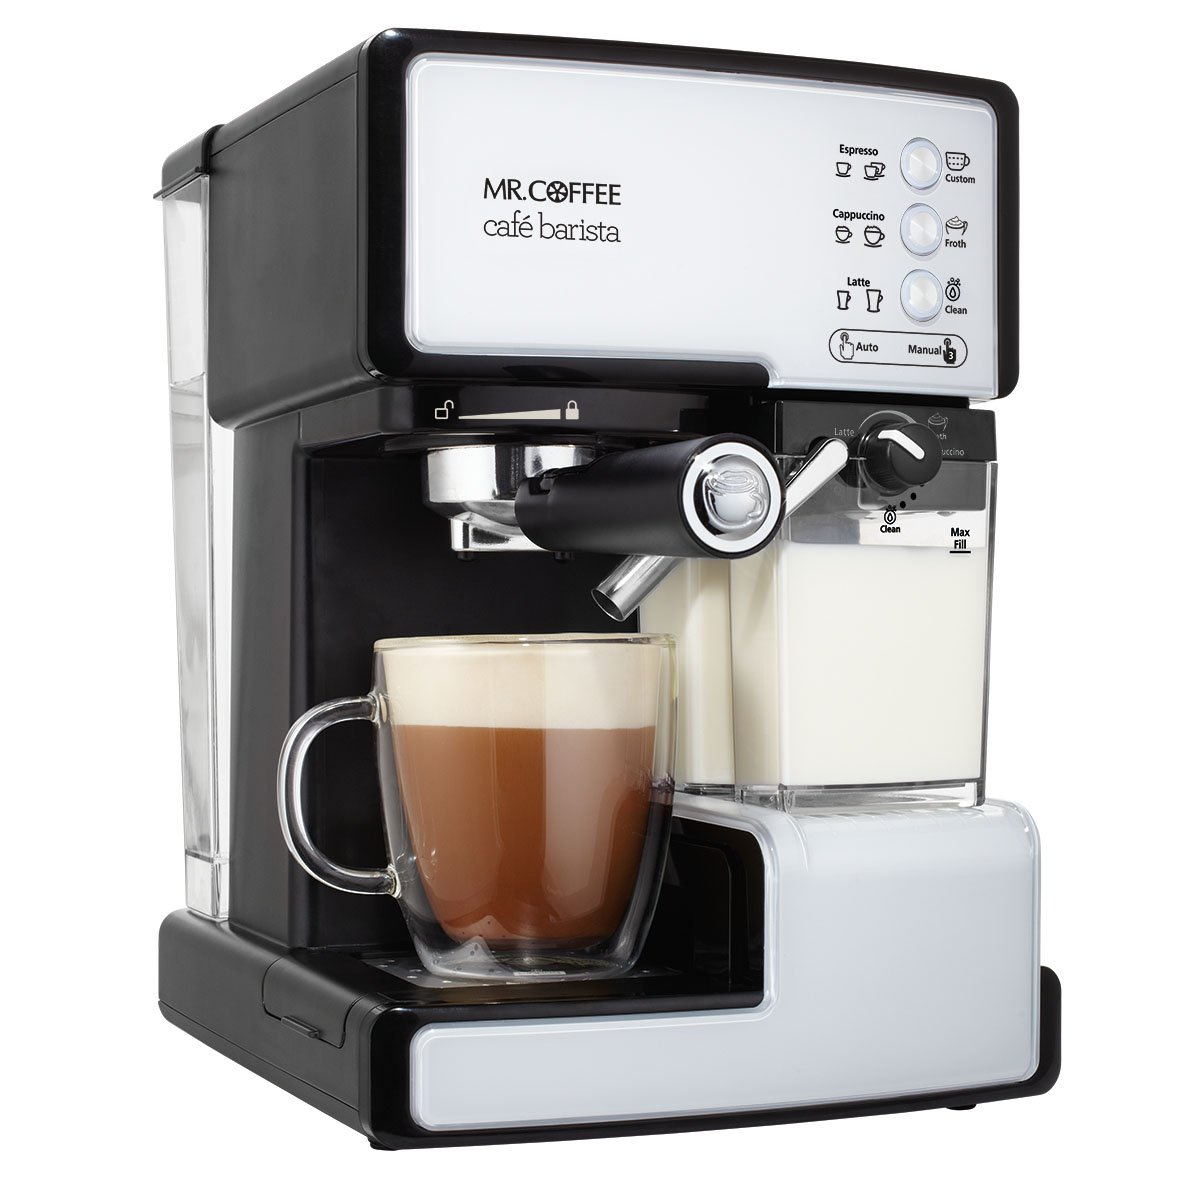 Mr. Coffee BVMC-ECMP1000-RB Cafe Barista Espresso Maker Machine